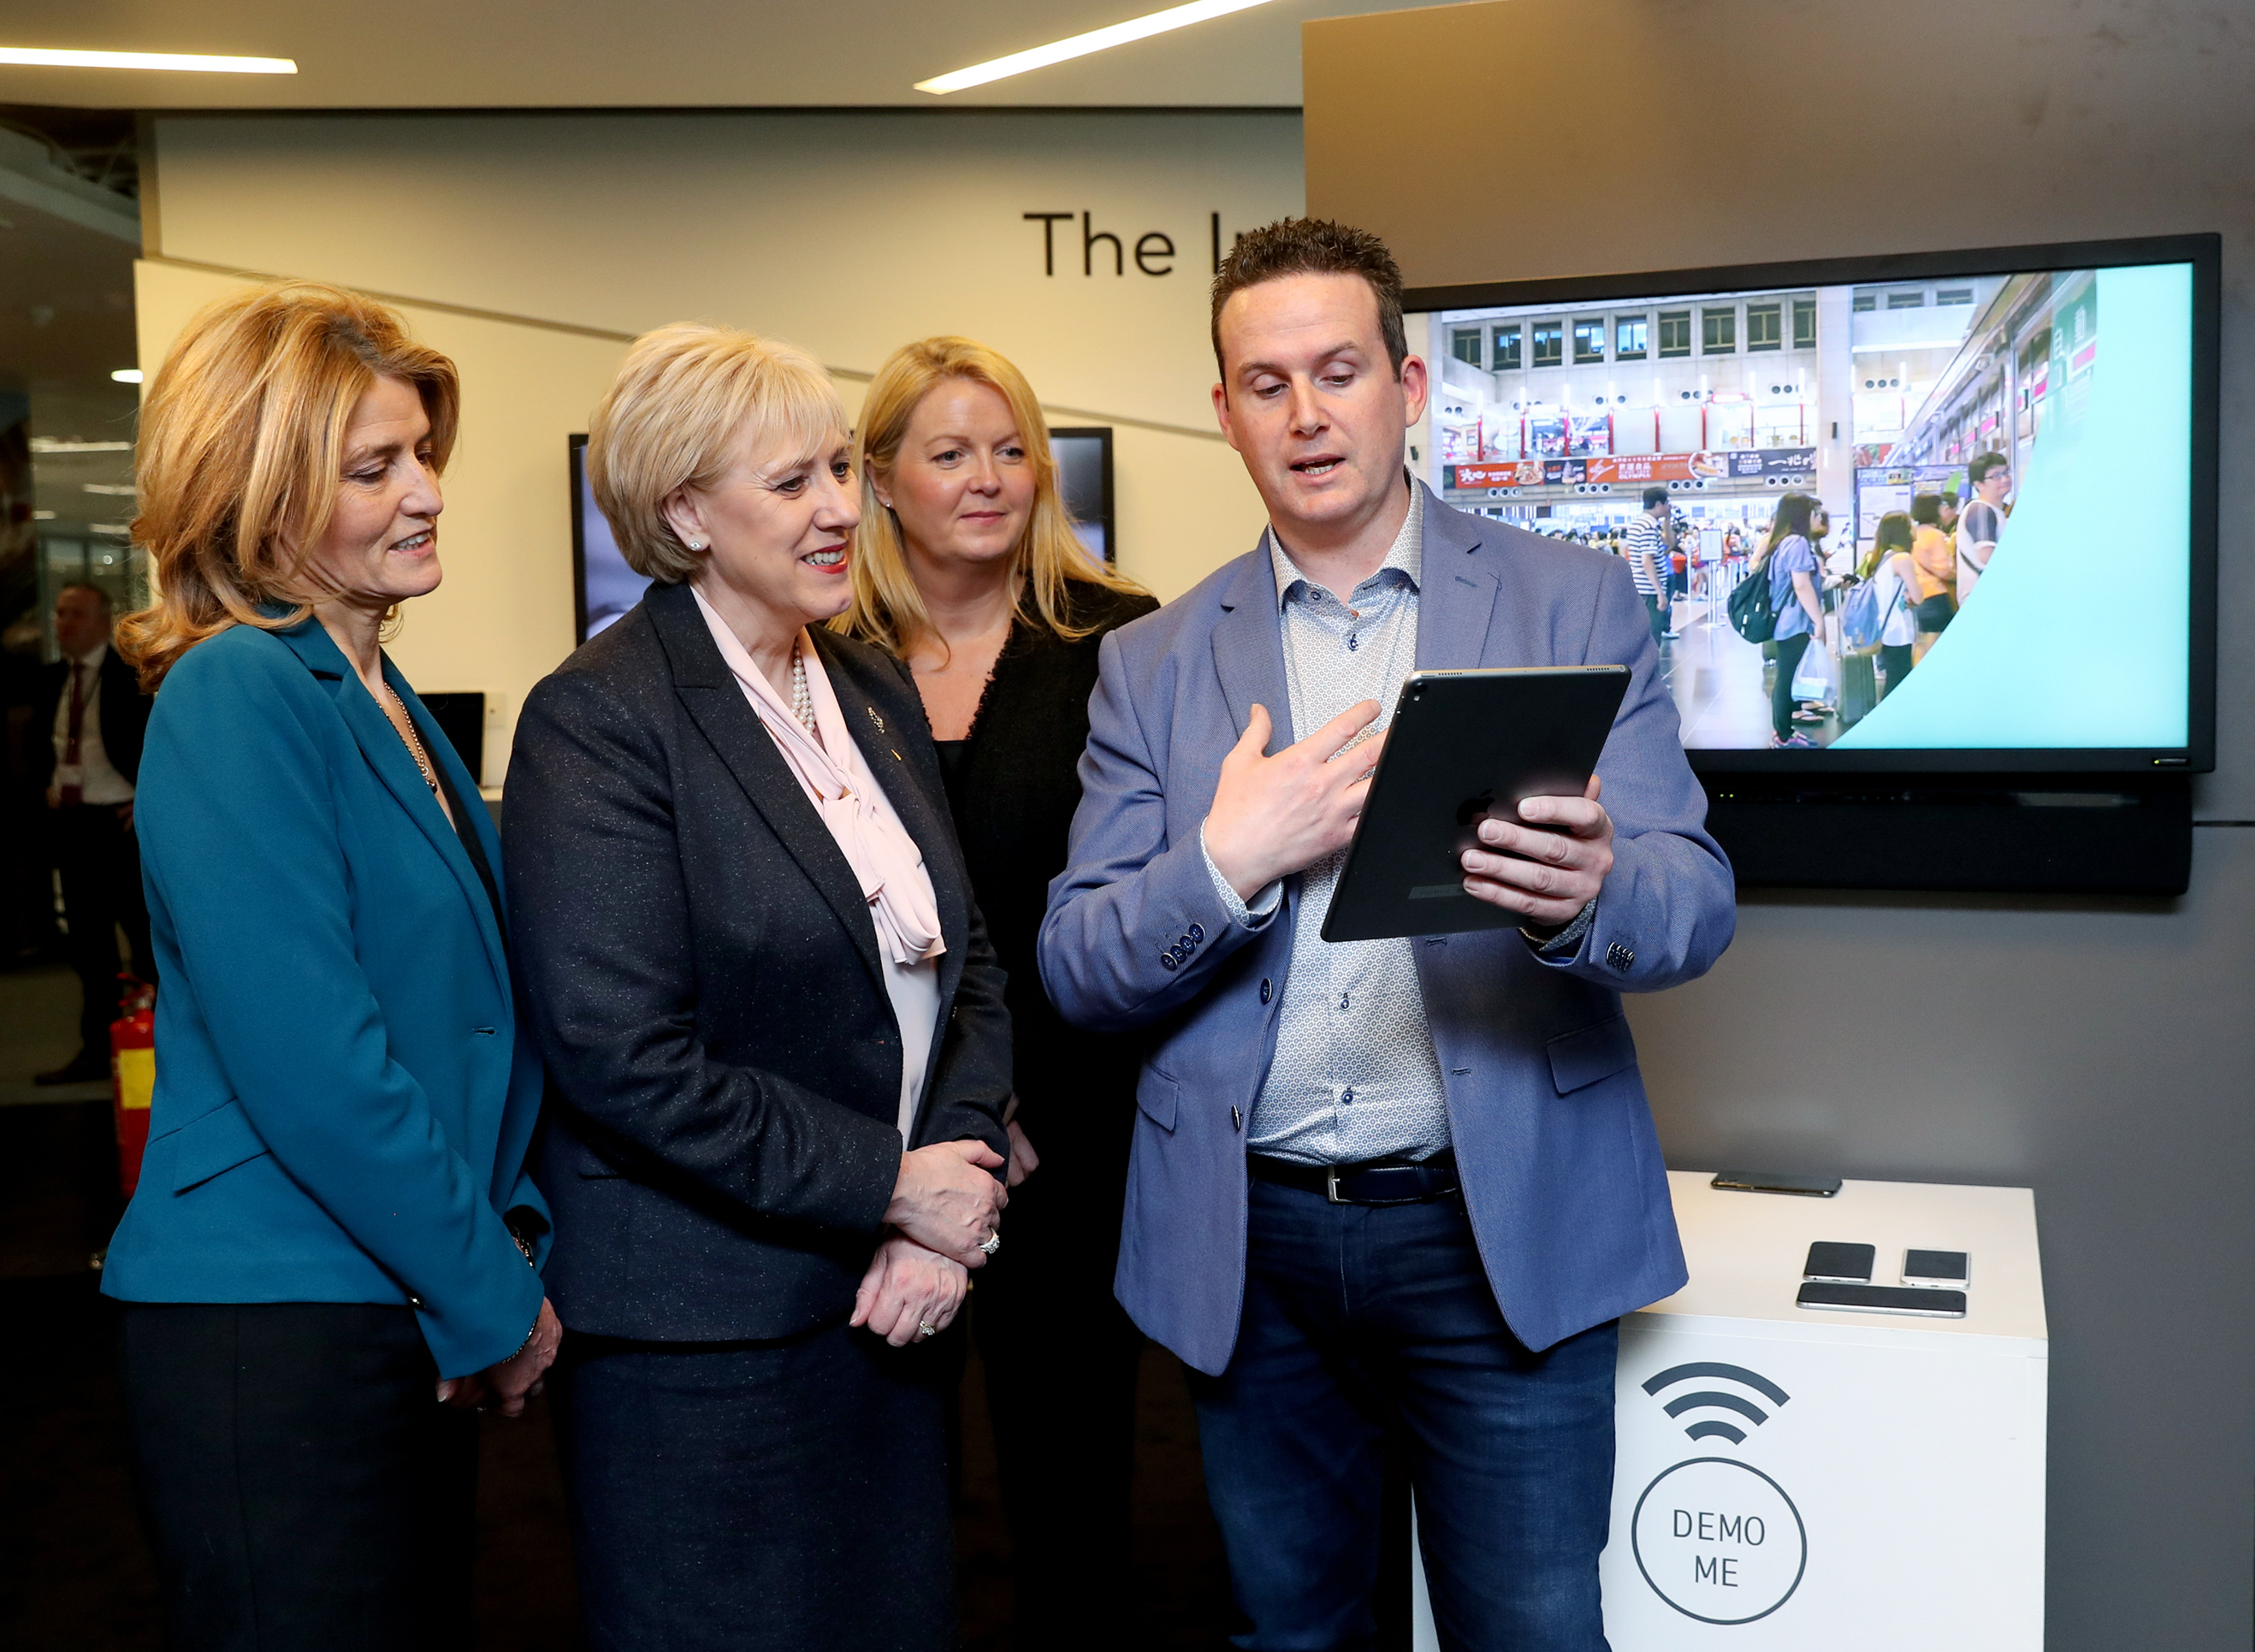 Embargoed until 00.01 Thursday 12th April 11/04/2018 NO REPRO FEE, MAXWELLS DUBLIN Mastercard expands presence in Ireland, hiring 175 new staff to drive payments innovation. Pic shows ( l to r ) Mary Buckley, Executive Director, IDA Ireland, Minister for Business, Enterprise and Innovation, Ms. Heather Humphreys T.D., Sonya Geelon, Country Manager, Mastercard Ireland and Dave Fleming, Global Head of Research & Development, MasterCard. Mastercard has announced it will expand its presence in Ireland, hiring 175 new employees in Dublin focused on driving innovation and creating the future of payments around the world. Roles include software engineers, blockchain specialists, data scientists, project managers, analysts, product designers, cloud infrastructure specialists and information security experts. The new jobs represent Mastercard's commitment to driving innovation in payments and beyond, designing ground-breaking security solutions, and striving for a world beyond cash. The office is also the hub of Mastercard's business in Ireland, working with banks and credit card issuers to deliver convenient, safe and secure payment services to consumers and businesses across Ireland.  PIC: NO FEE, MAXWELLPHOTOGRAPHY.IE